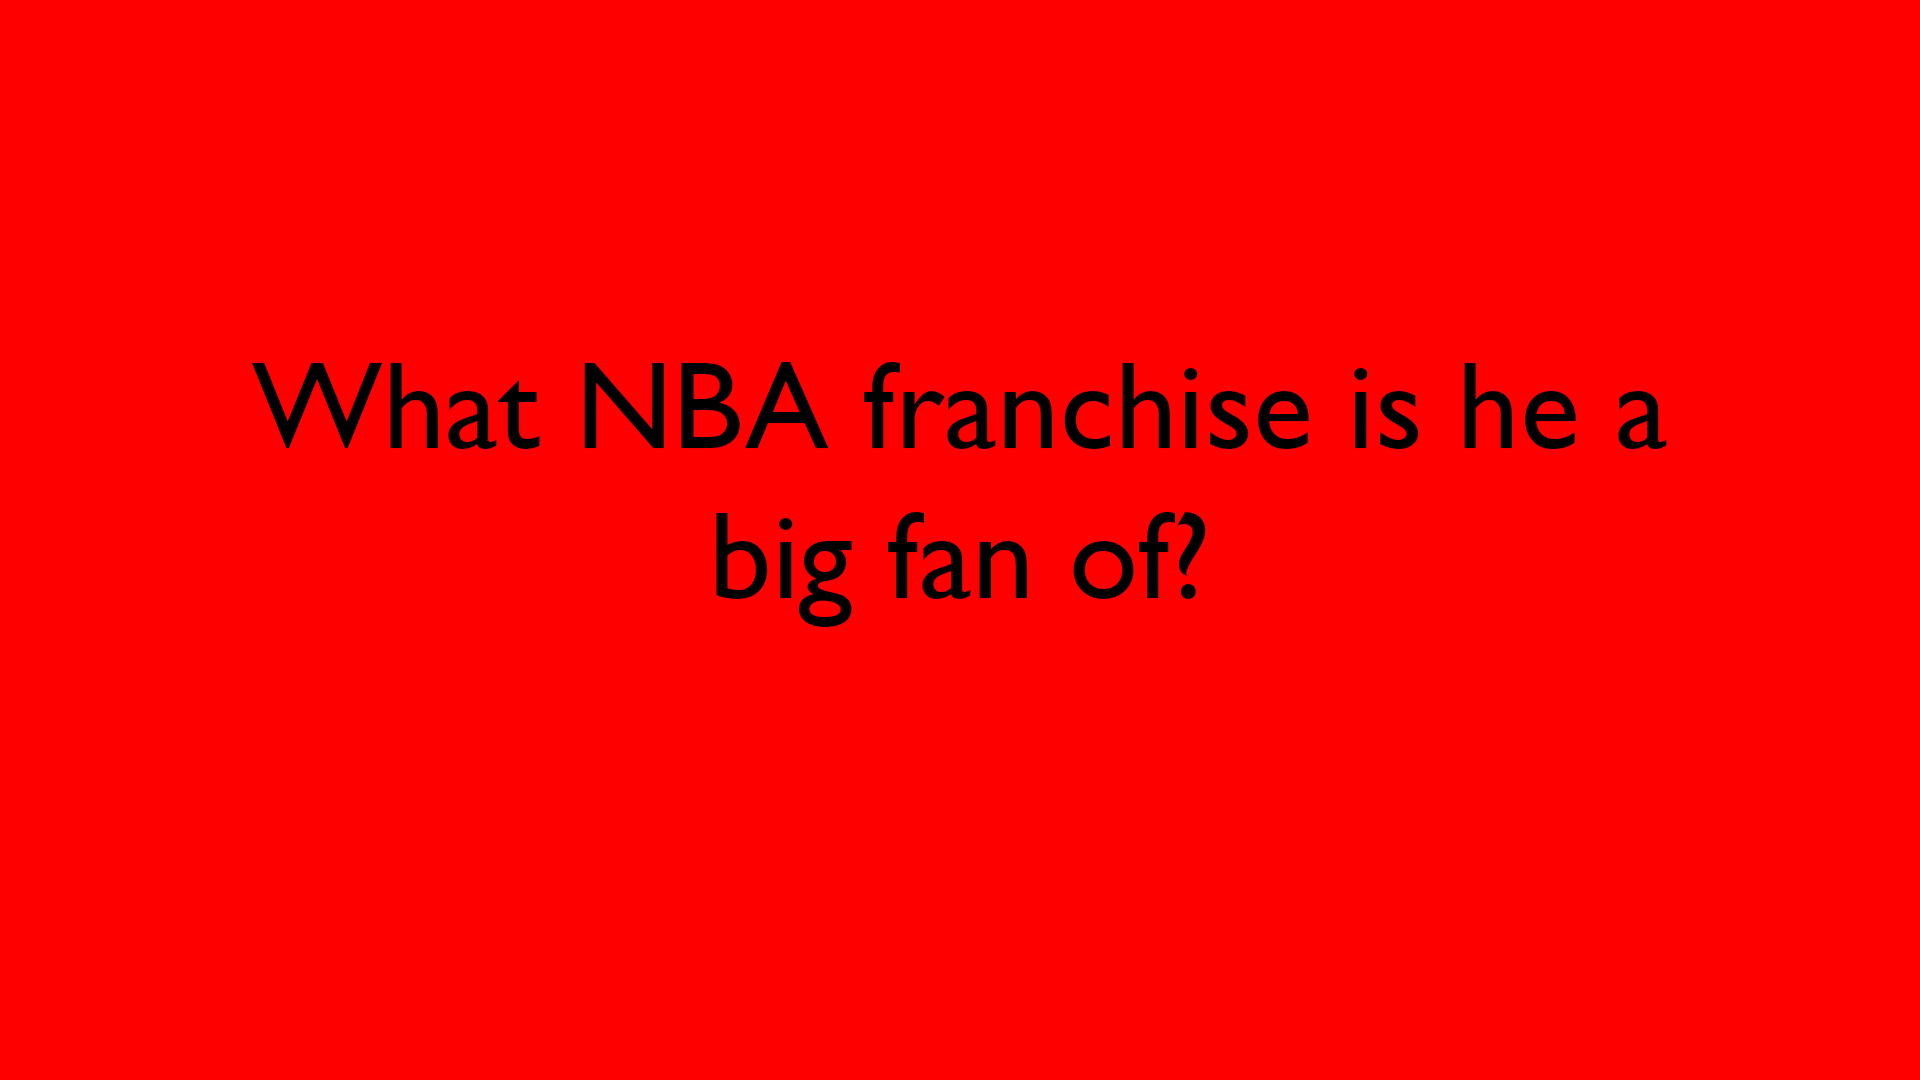 What NBA franchise is he a big fan of?